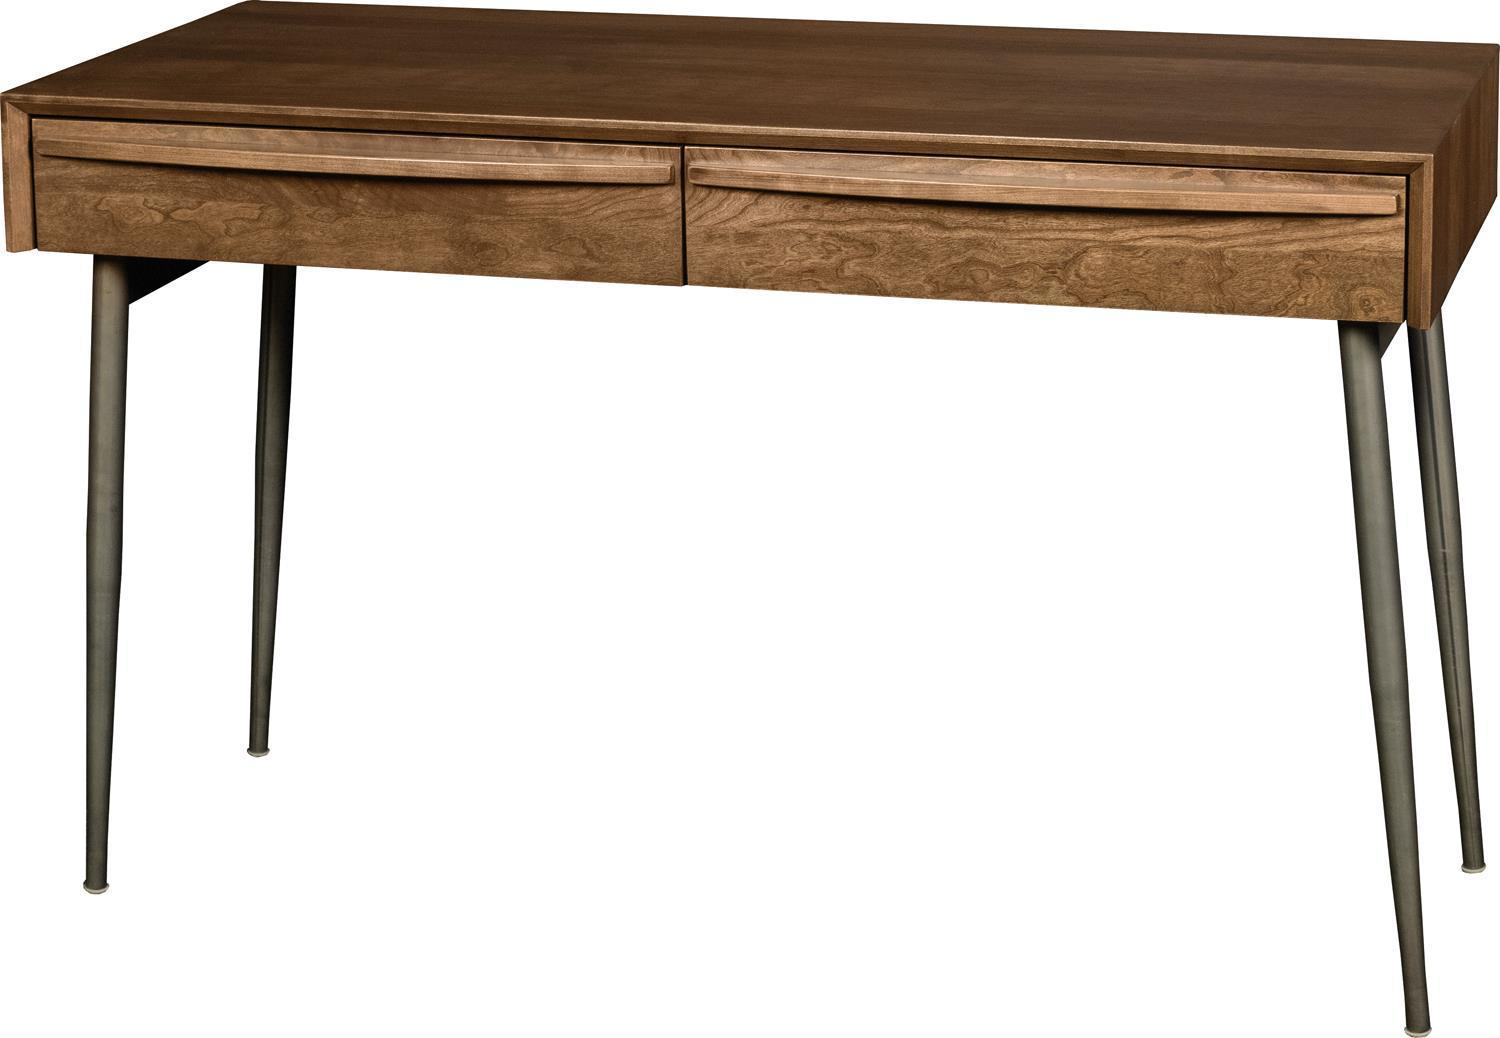 Image of: Amish Mid Century Modern Writing Desk From Dutchcrafters Amish